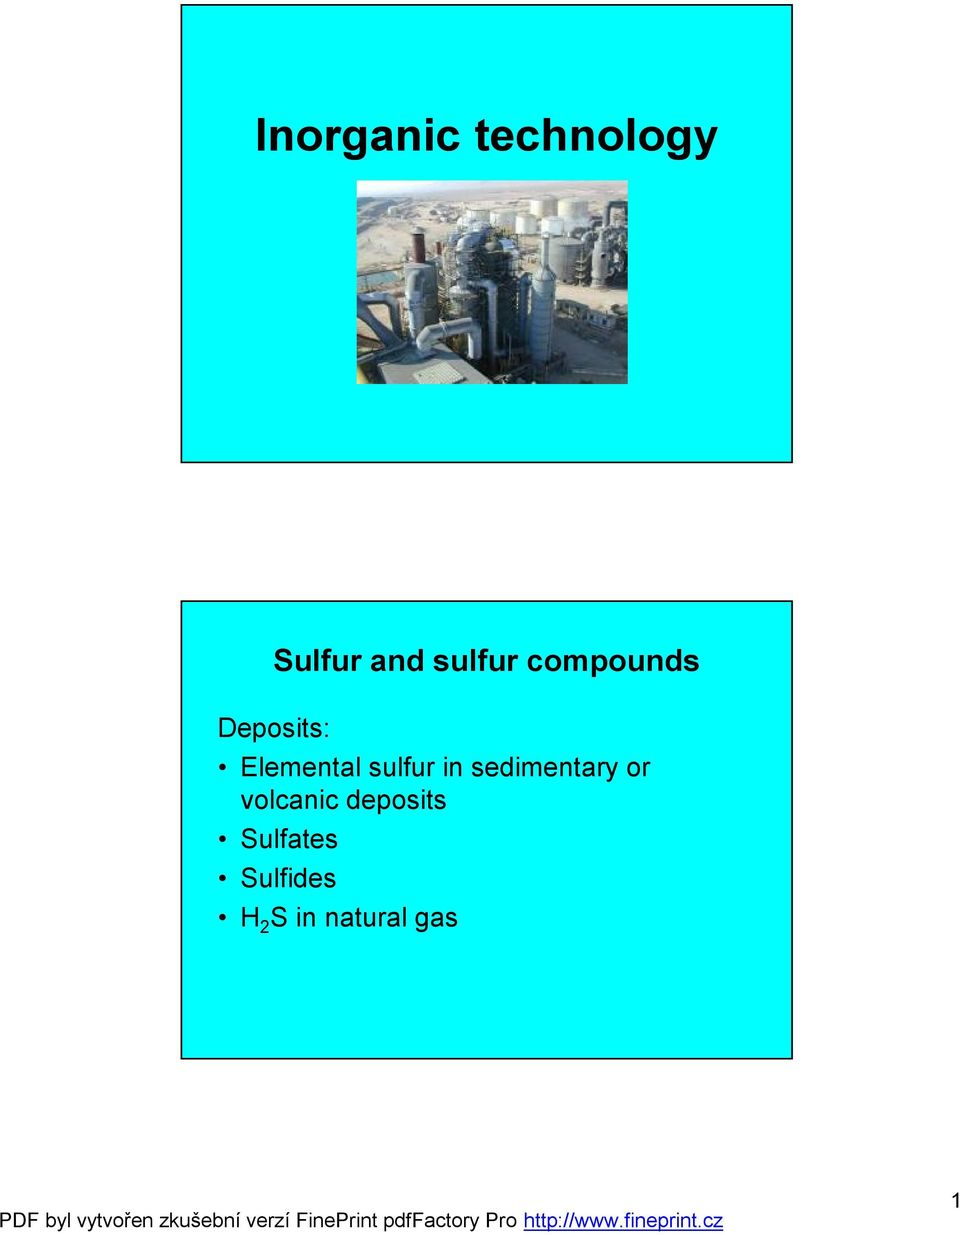 sulfur in sedimentary or volcanic